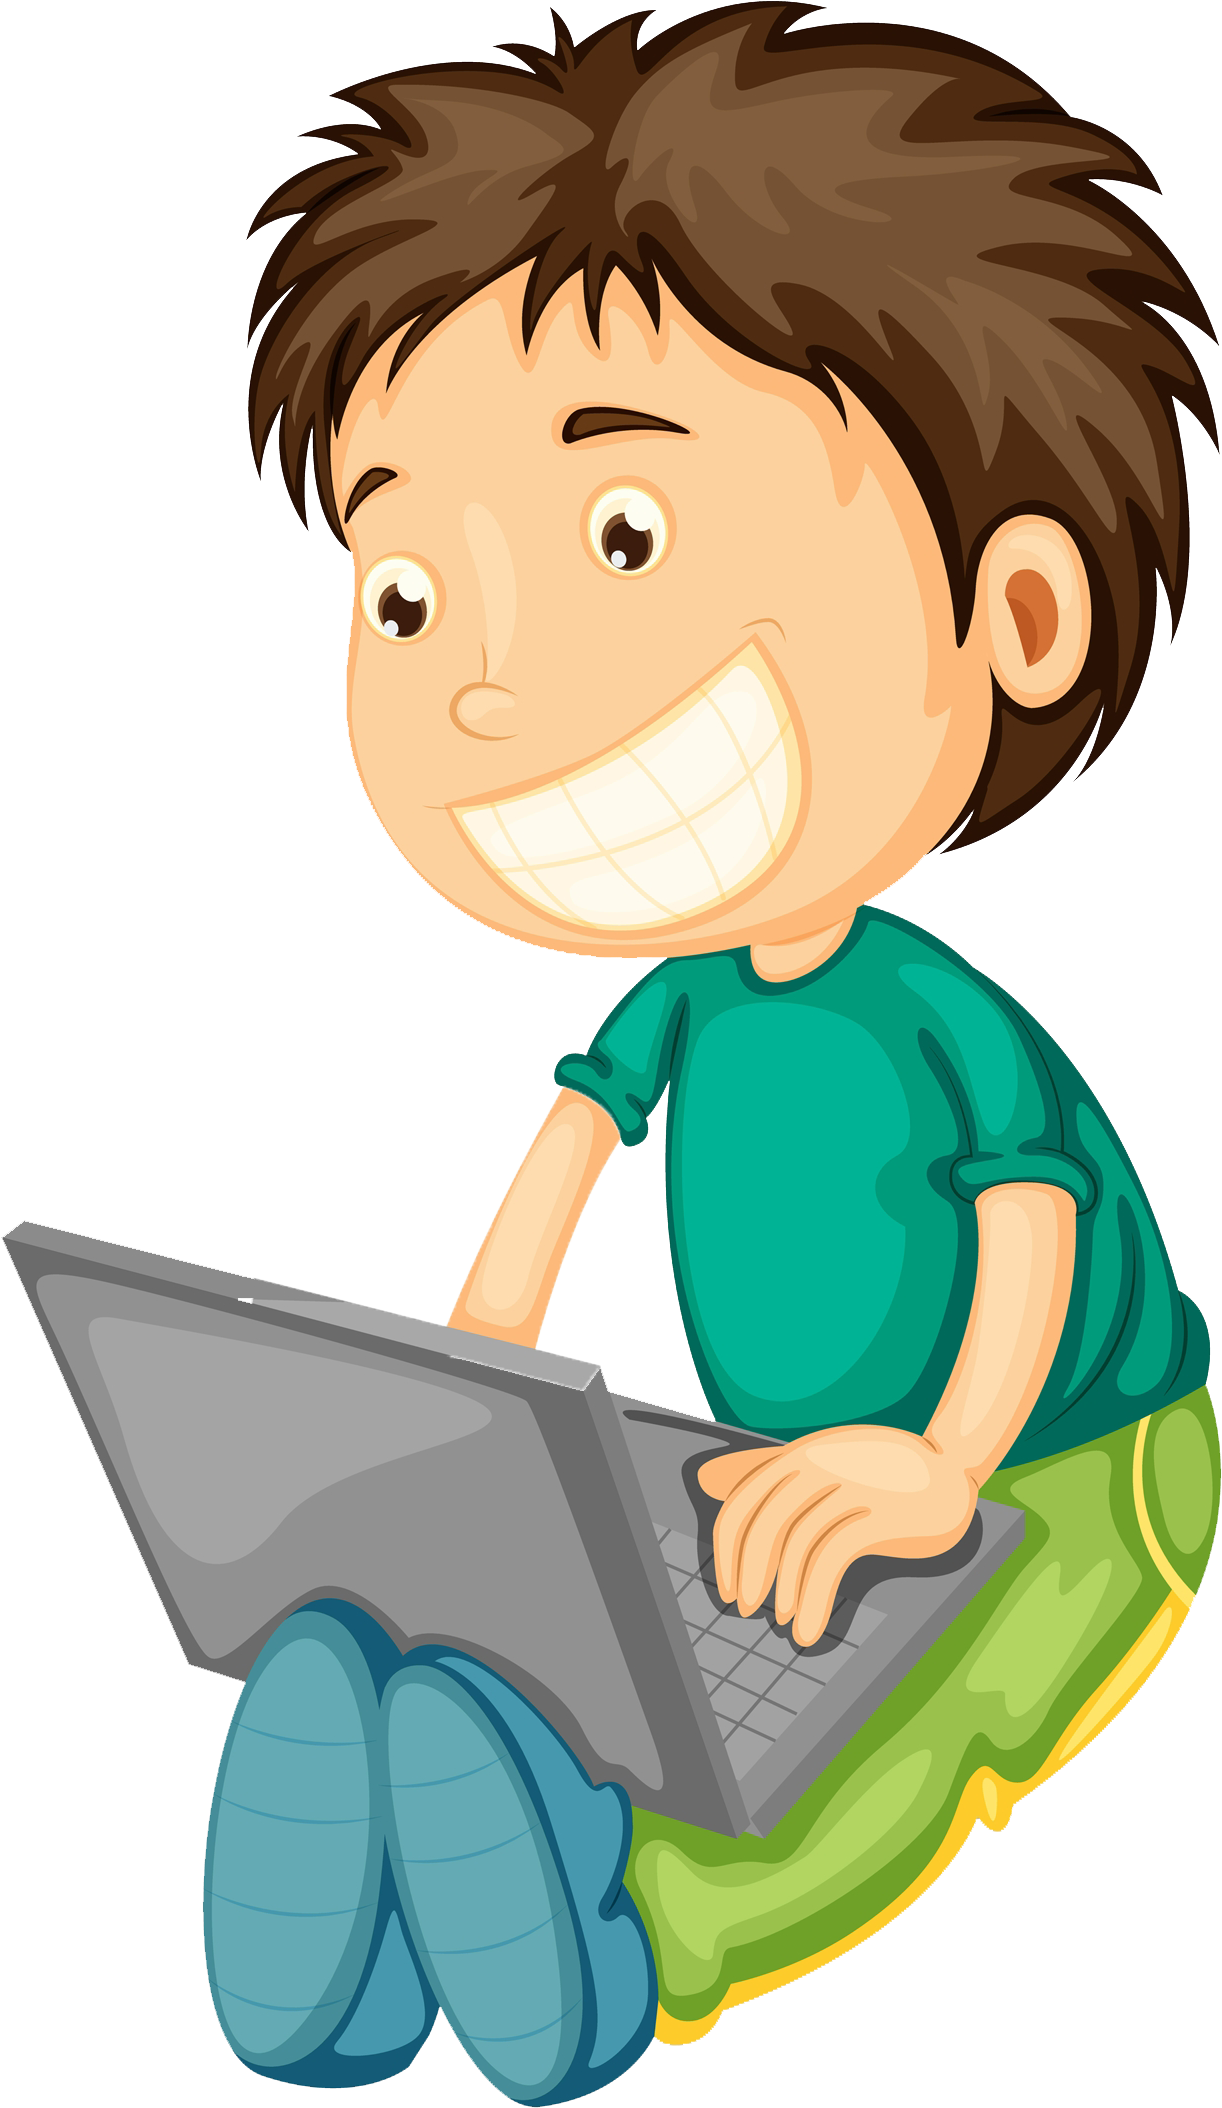 Computer Boy Png - Computer Boy Clipart - Boy And Girl On Laptop Clipart - Png ...